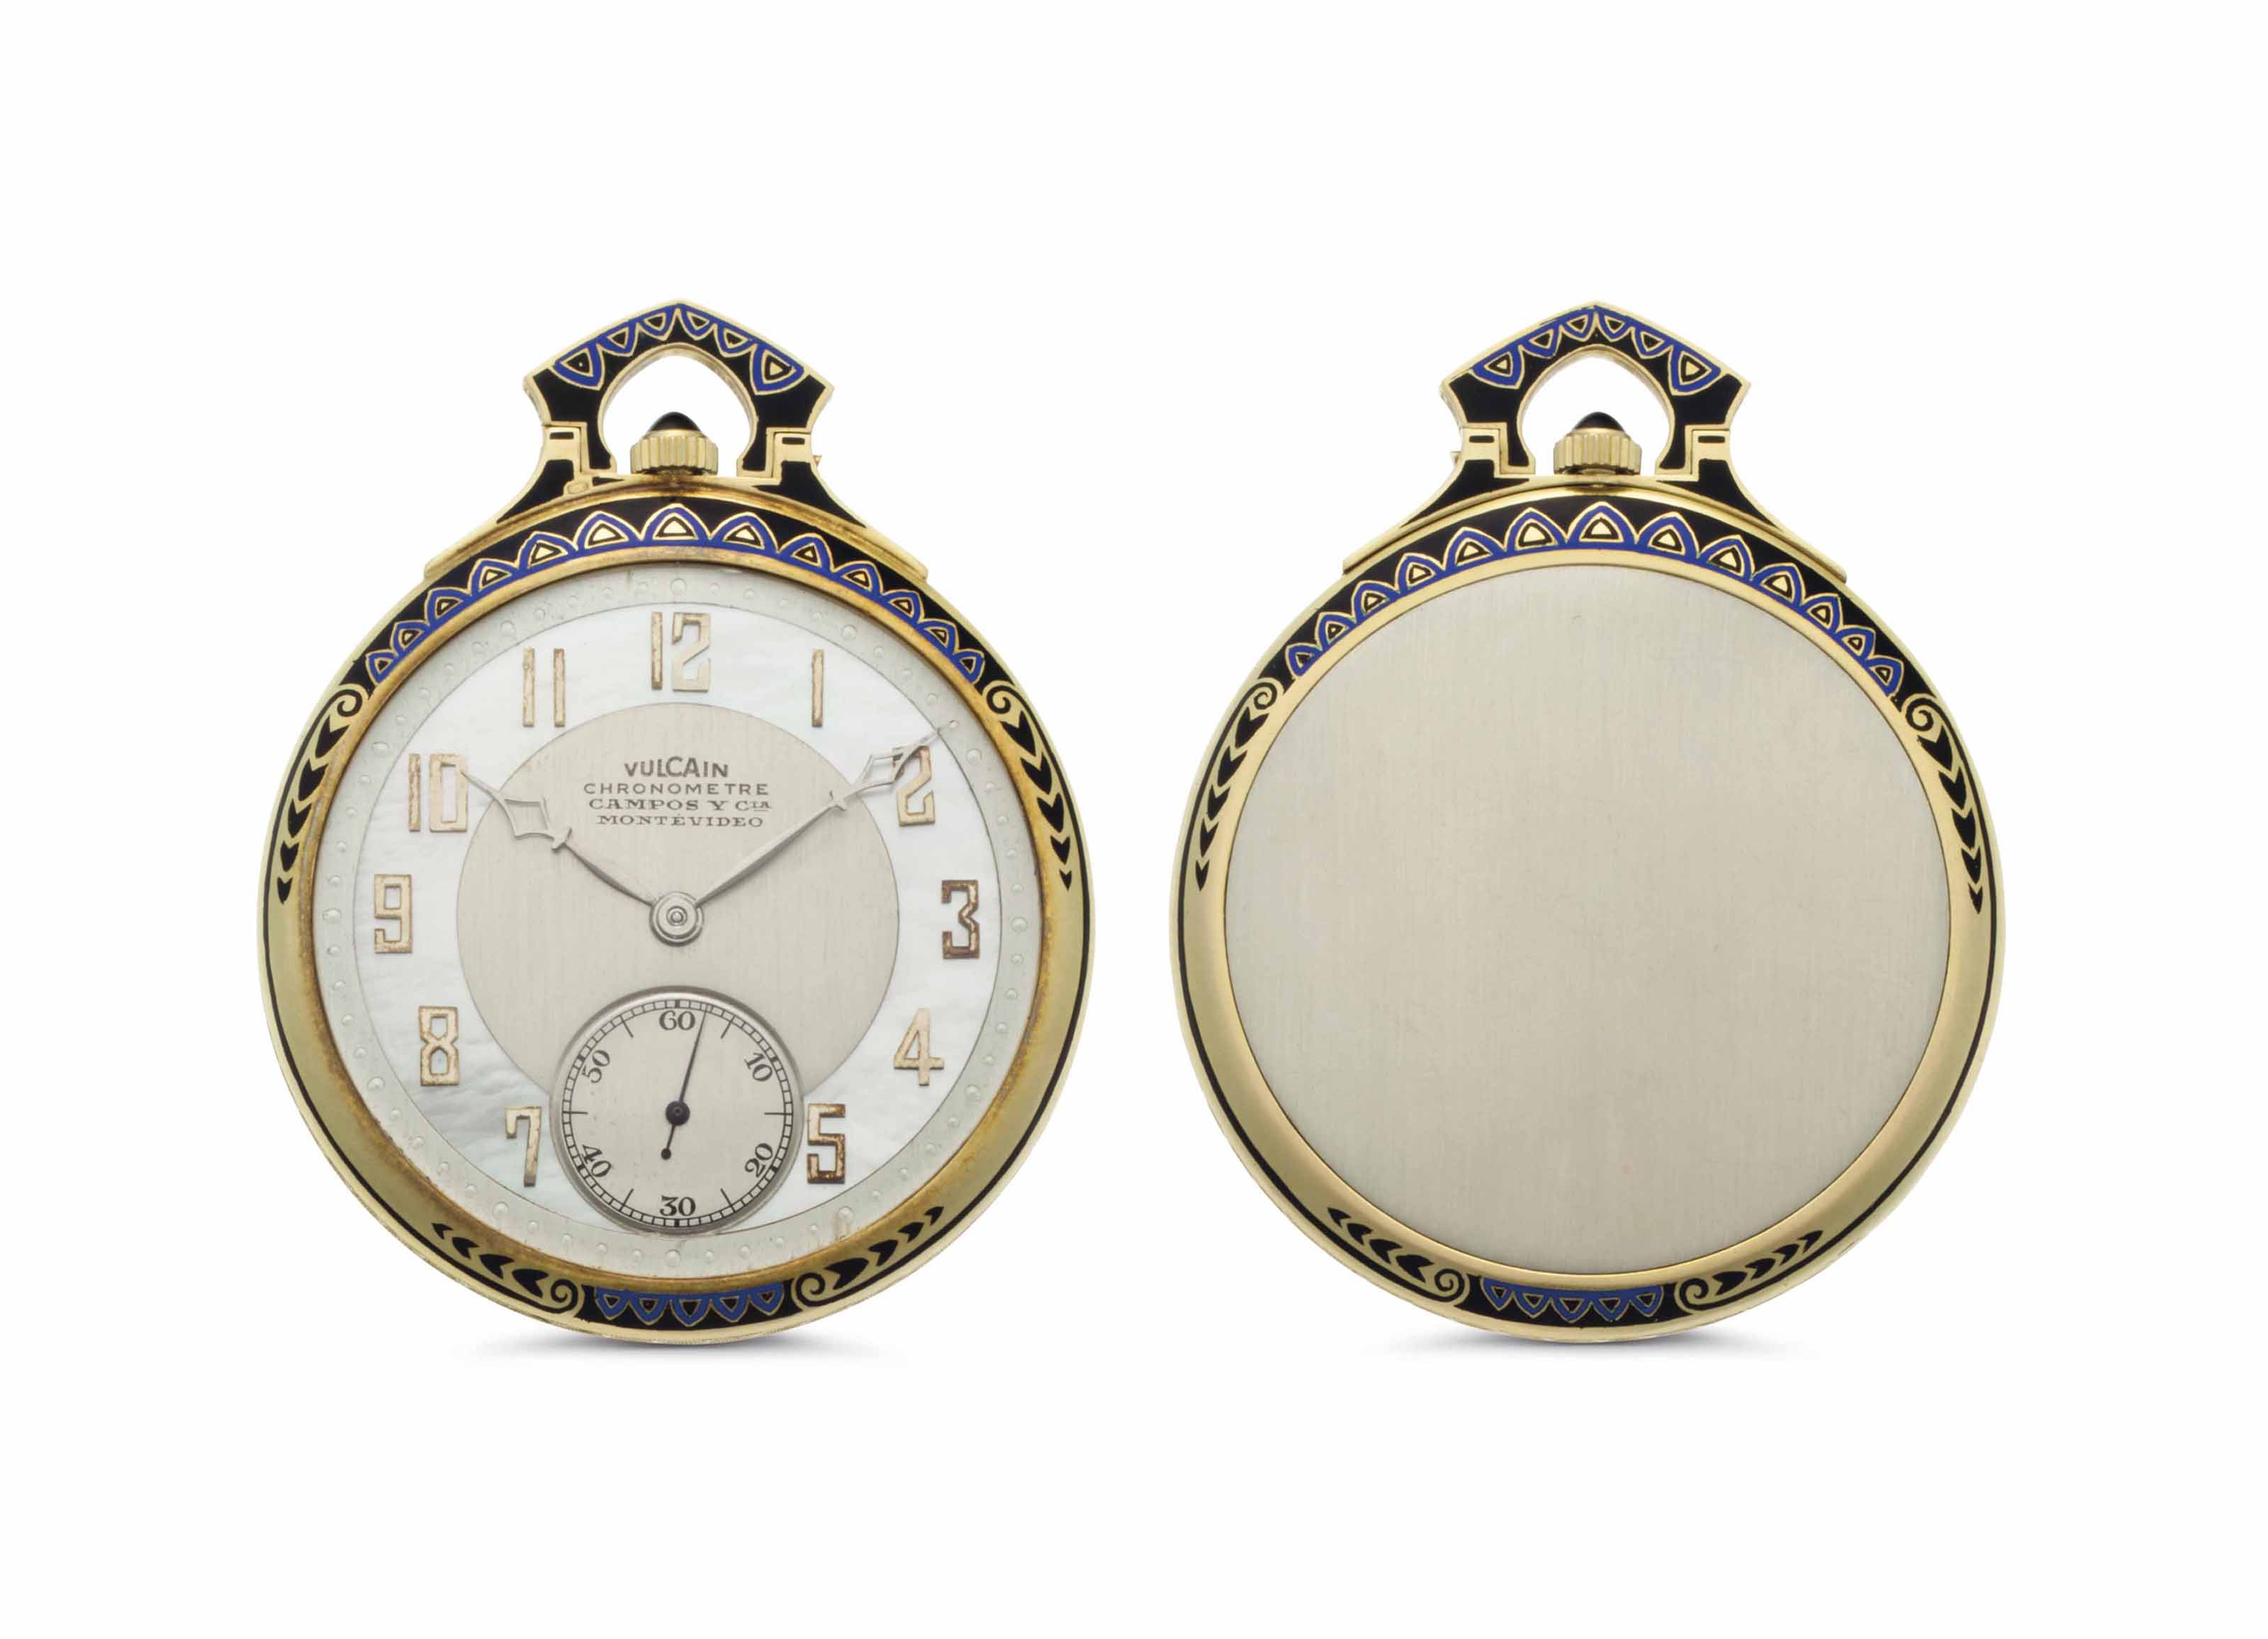 Vulcain. A Two-Tone 18k Gold, Enamel and Mother-of-Pearl Openface Keyless Lever Watch